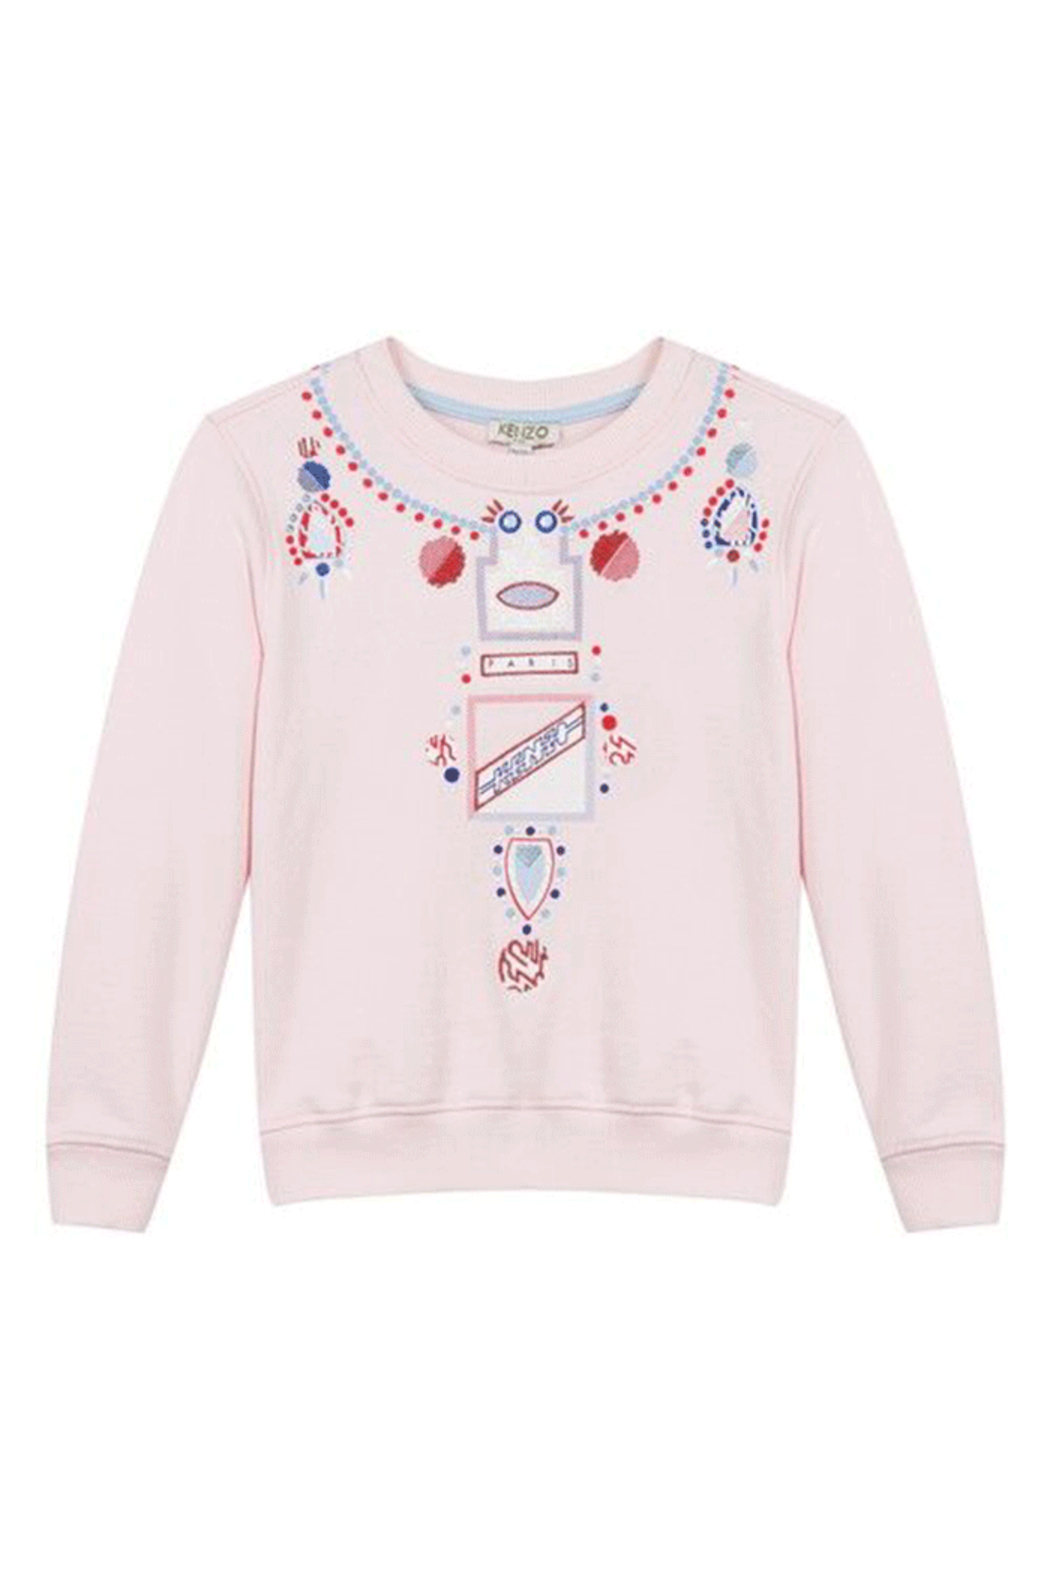 479689301e Kenzo 8-12Y Kristen Necklace Sweater from New York City by Mon Petit ...